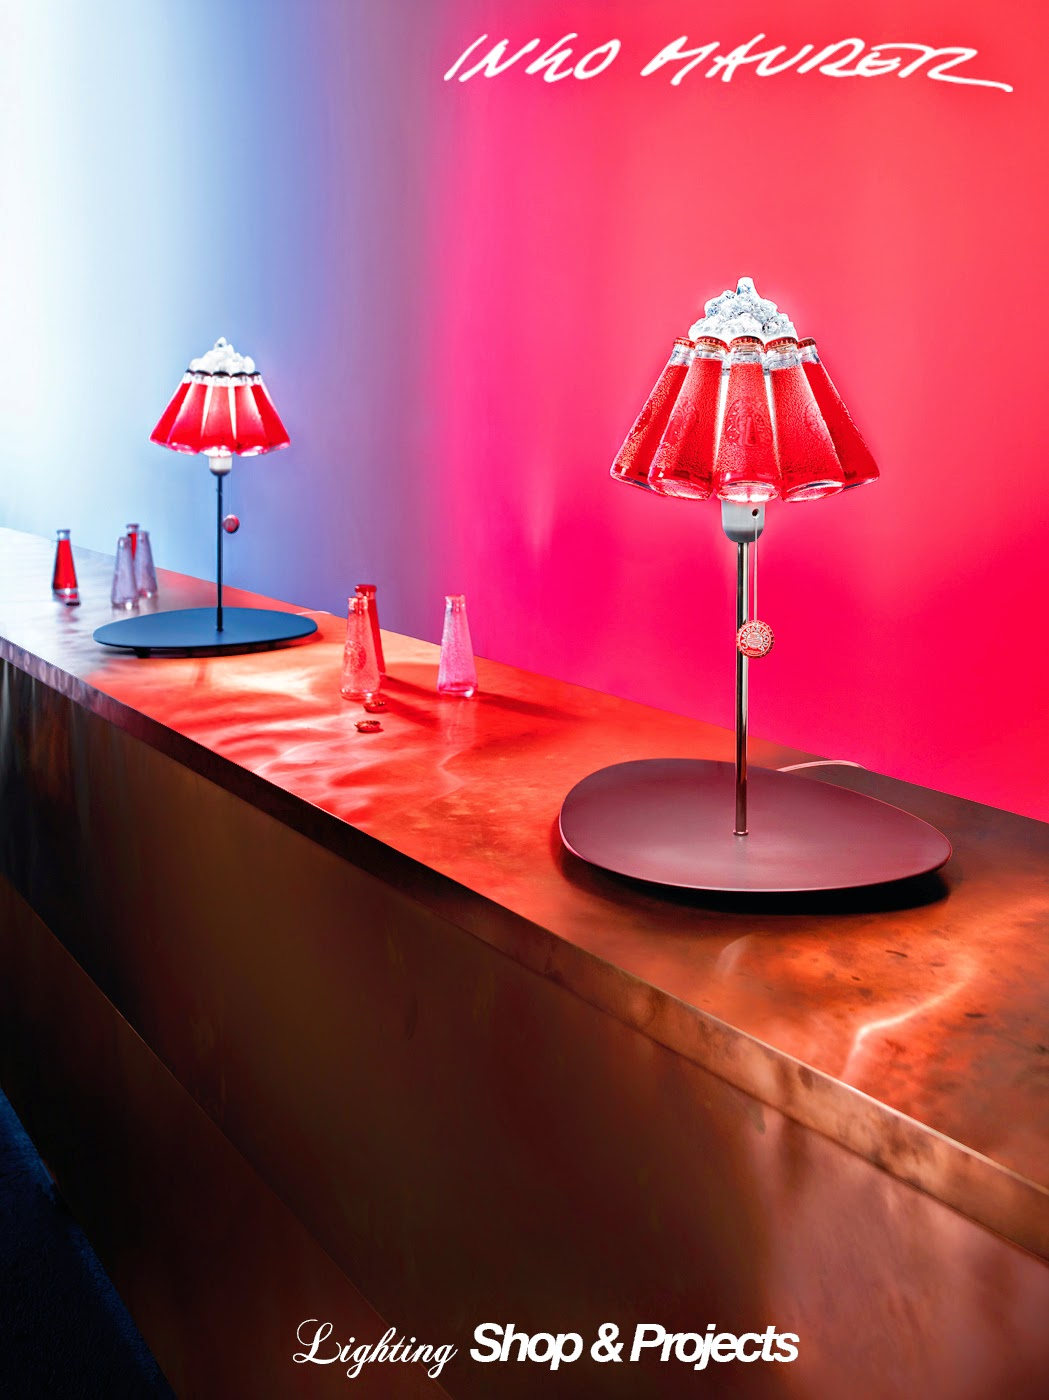 Campari by Ingo Maurer